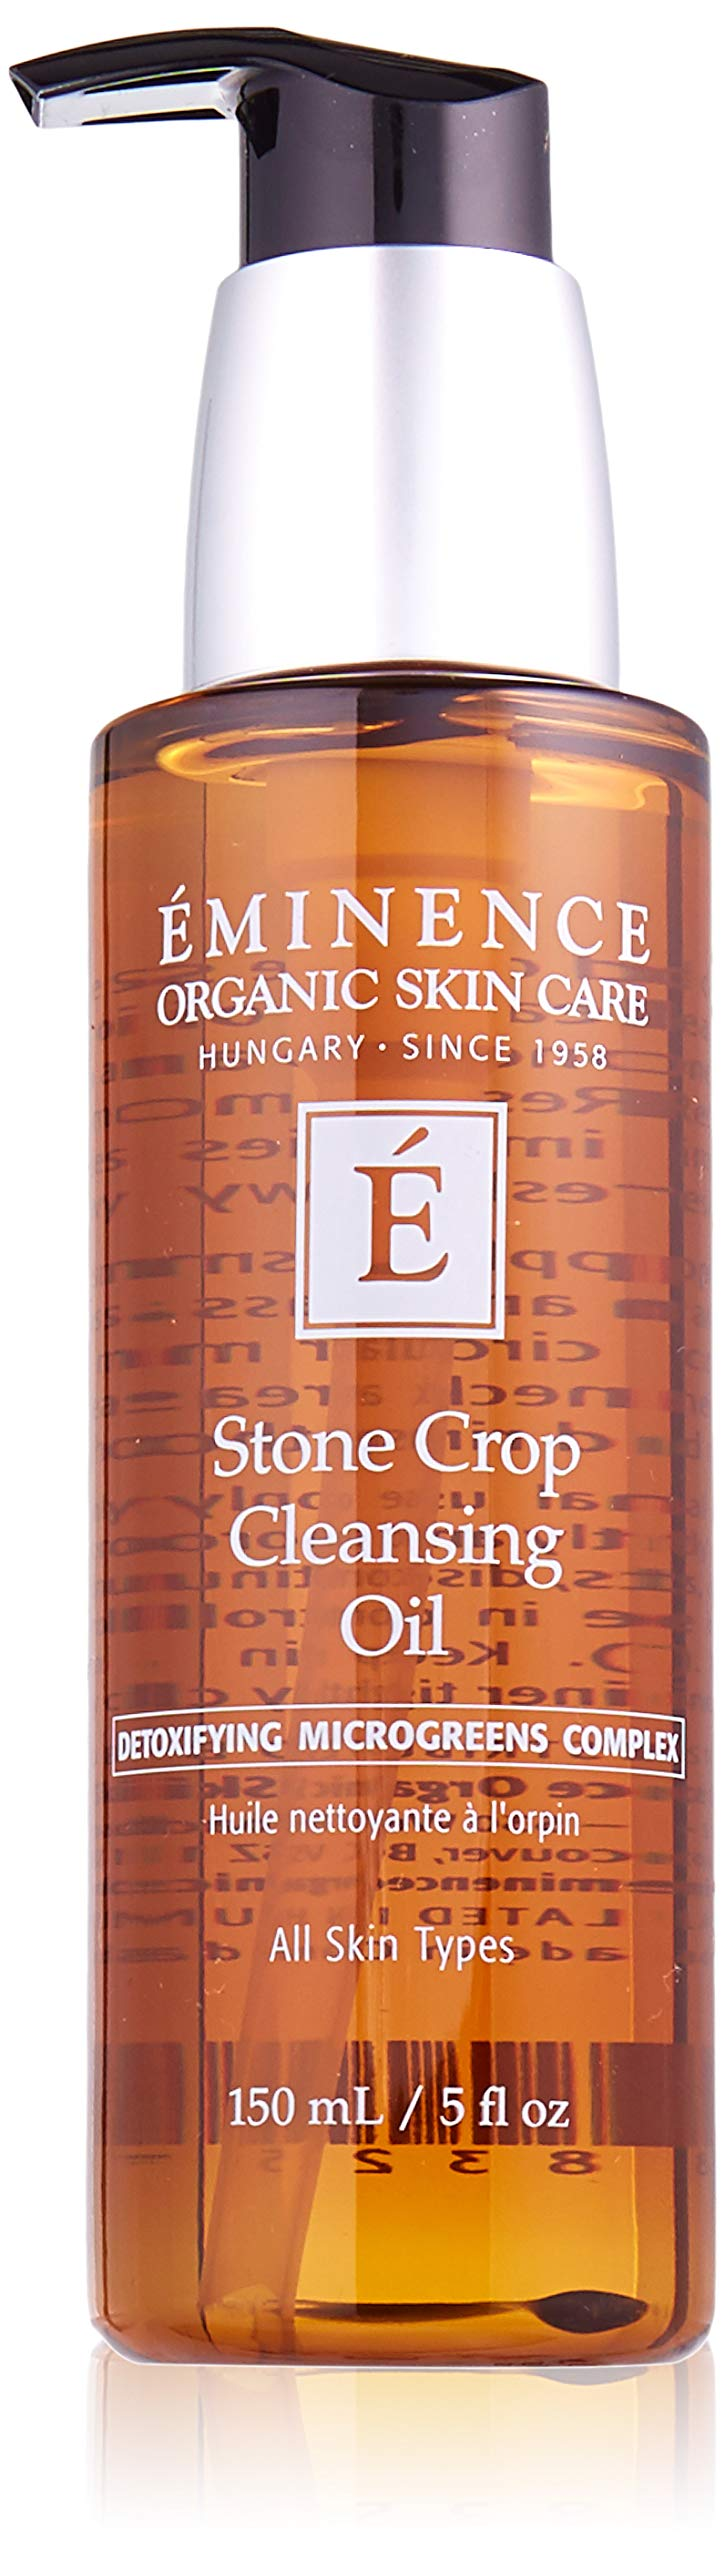 Eminence Organic Skincare Stone Crop Cleansing Oil, 5 Fluid Ounce by Eminence